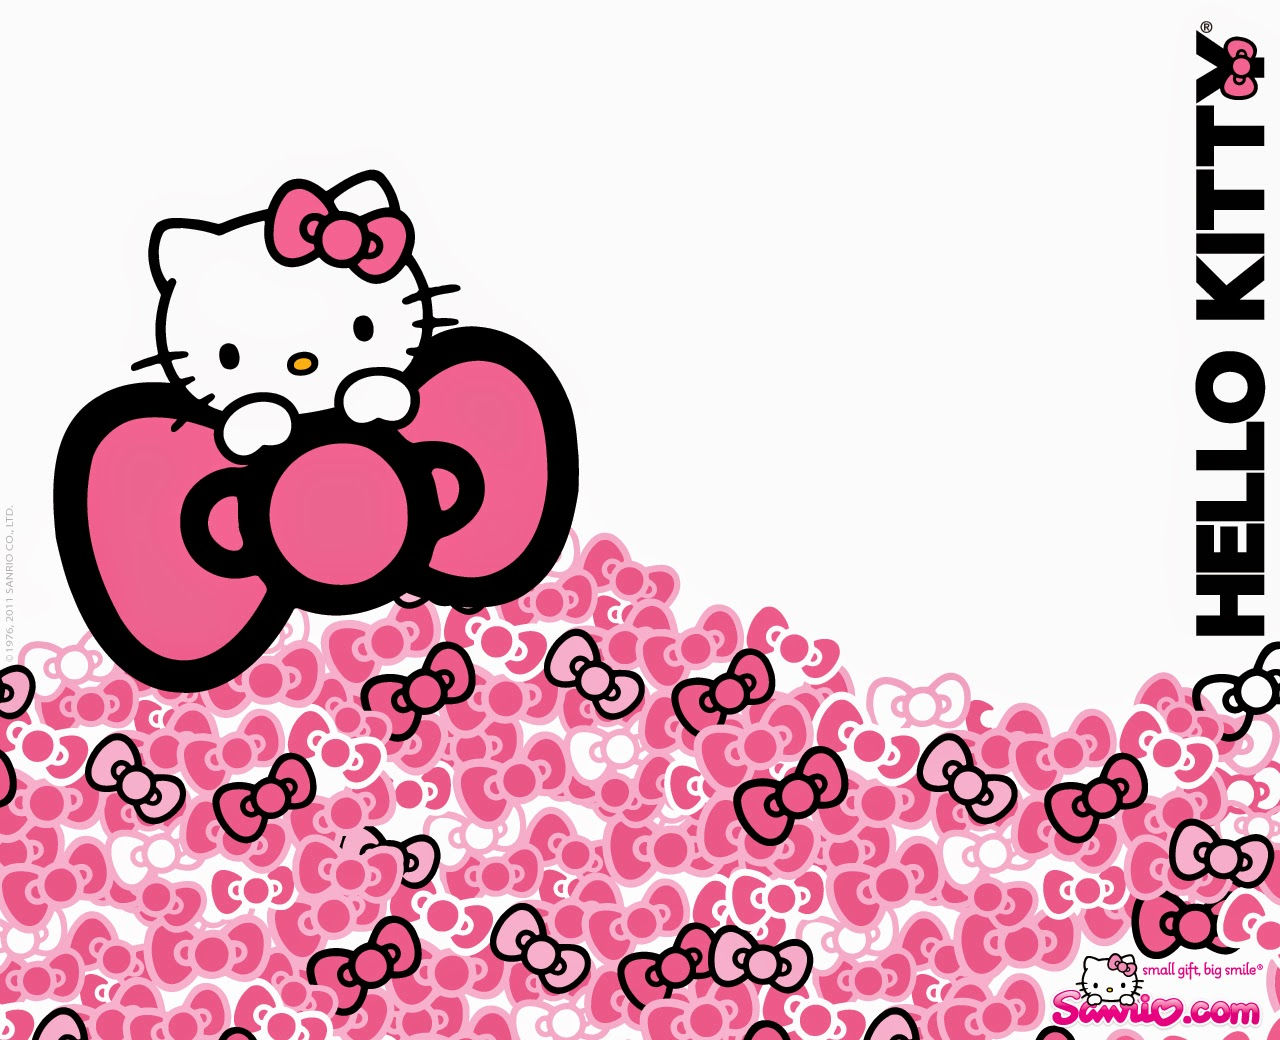 Pink Hello Kitty Wallpaper Is A Popular For Lover This Another Cute Picture In Color There Are Also White Background With